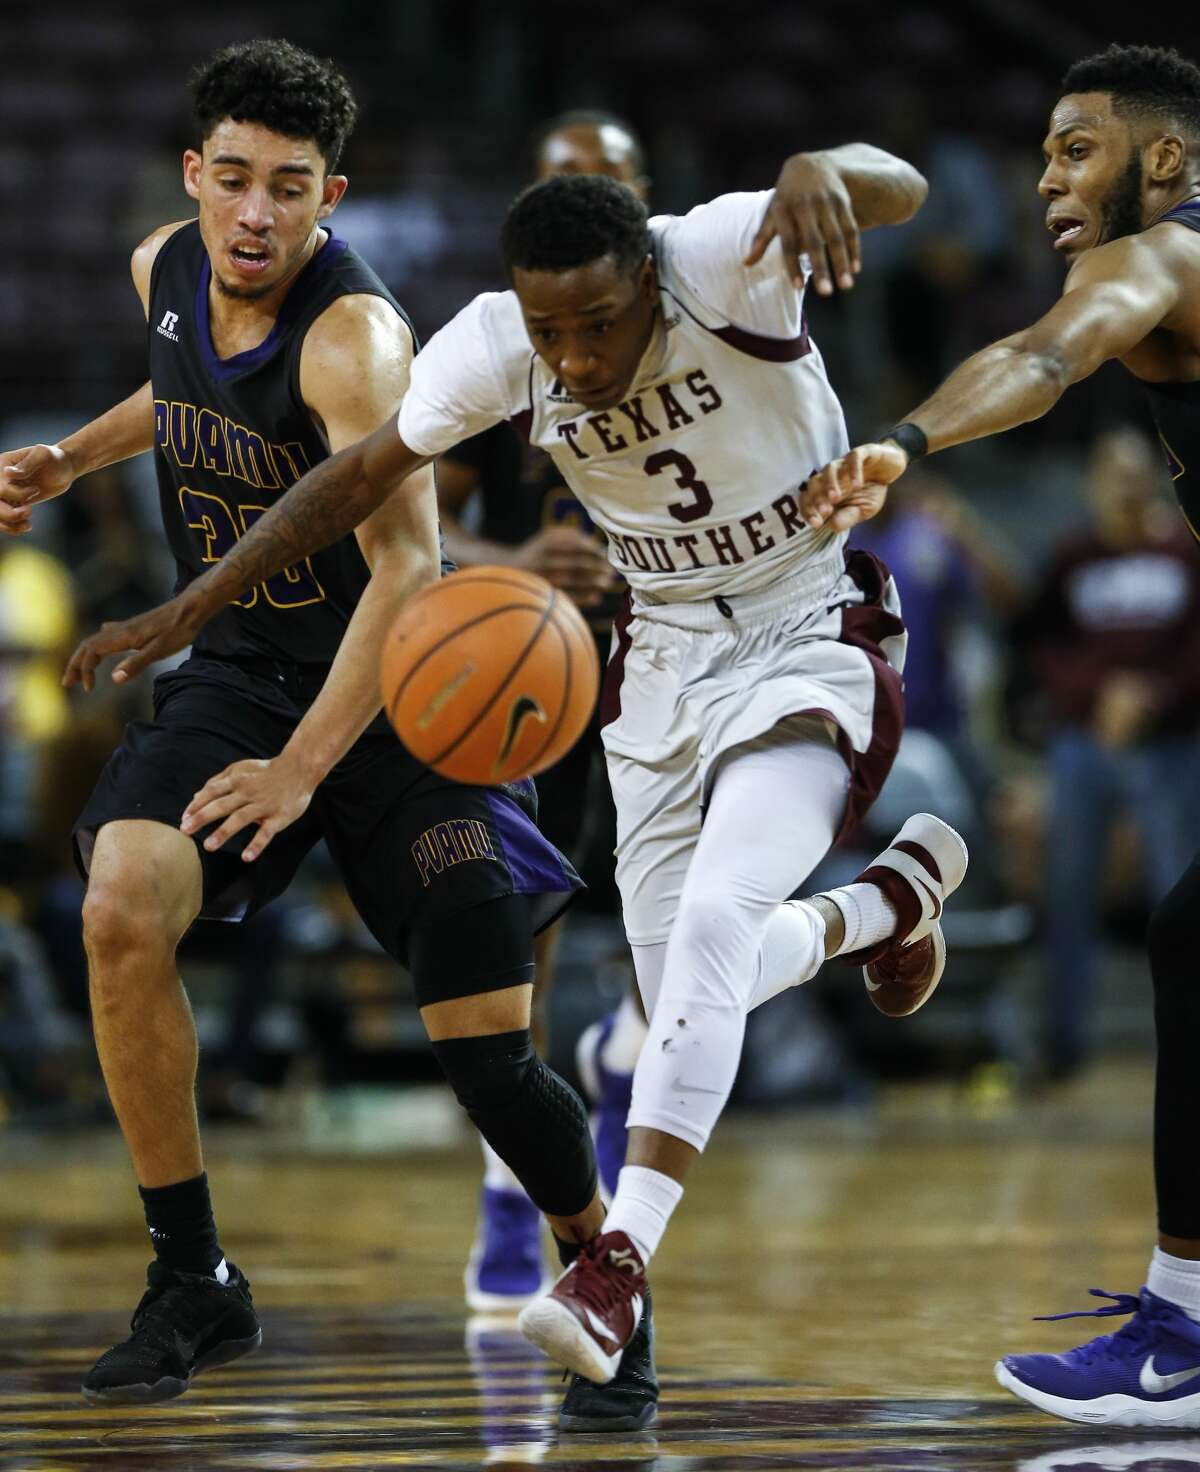 Texas Southern guard Demontrae Jefferson (3) runs between Prairie View A&M guard Austin Starr (30) and forward Zachary Hamilton (14) as he takes the ball upcourt during the second half of an NCAA basketball game at TSU's HPE Arena on Saturday, Jan. 6, 2018, in Houston. ( Brett Coomer / Houston Chronicle )